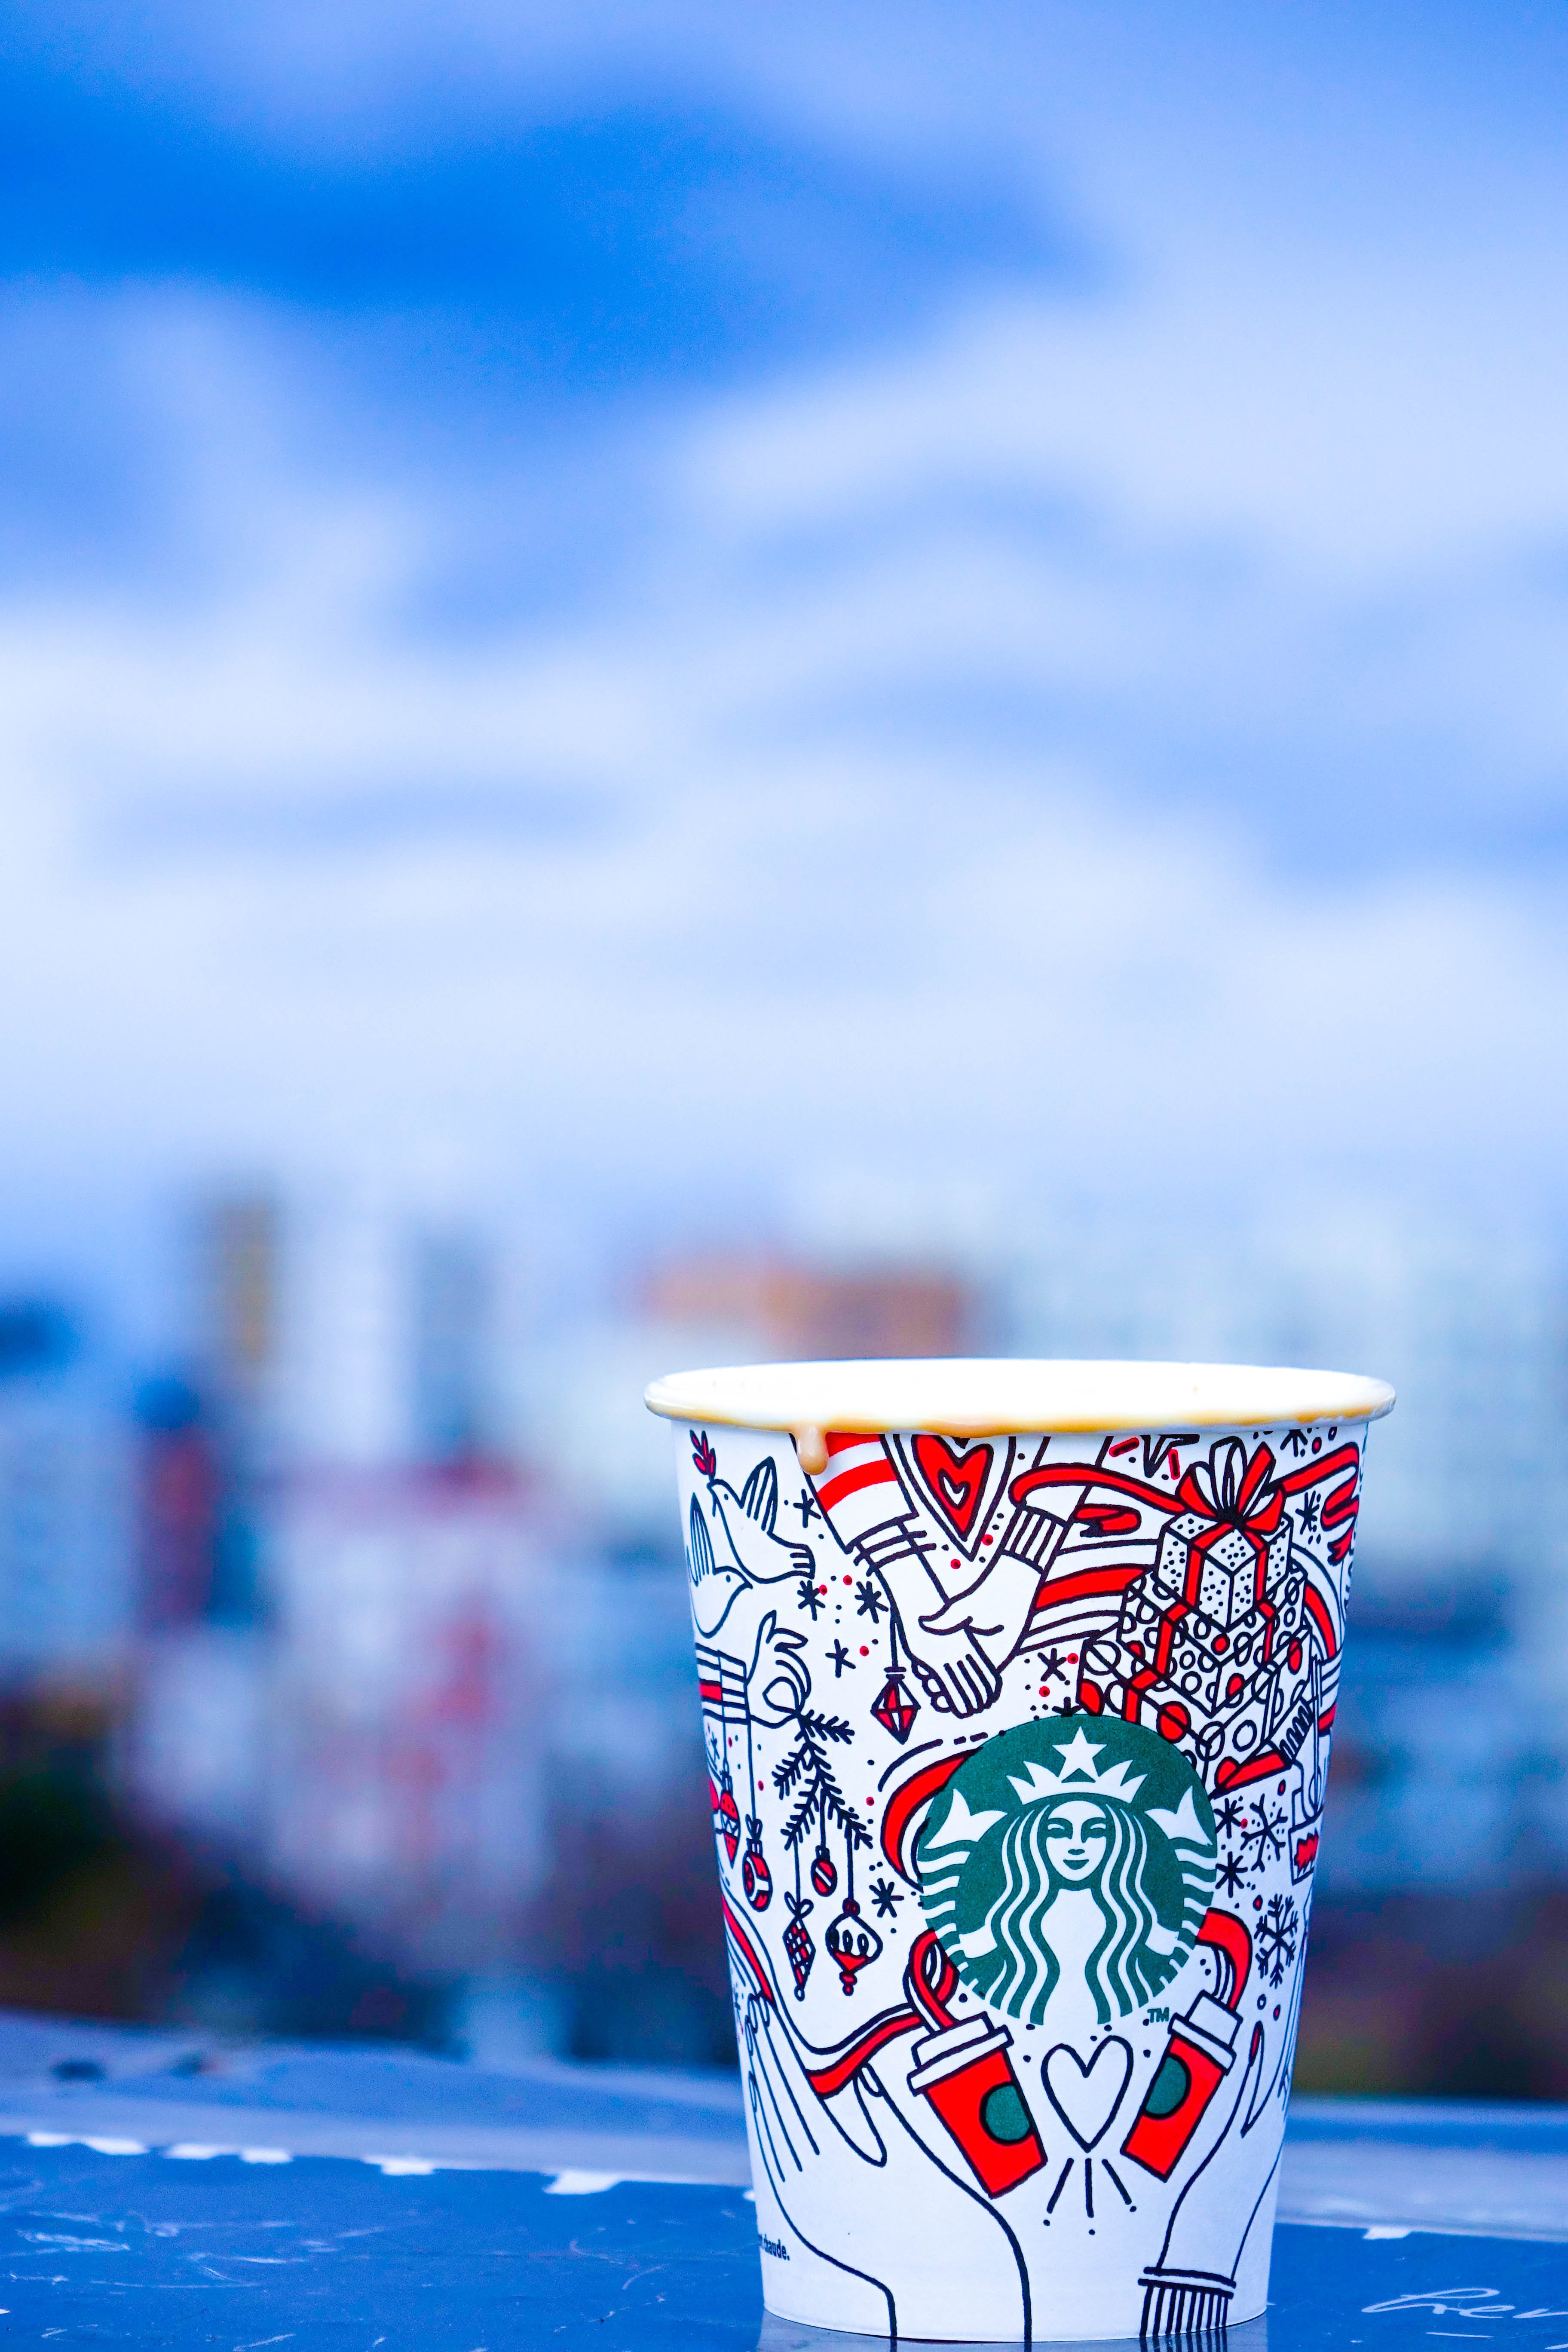 Close-Up Photo of White and Red Starbucks Disposable Cup